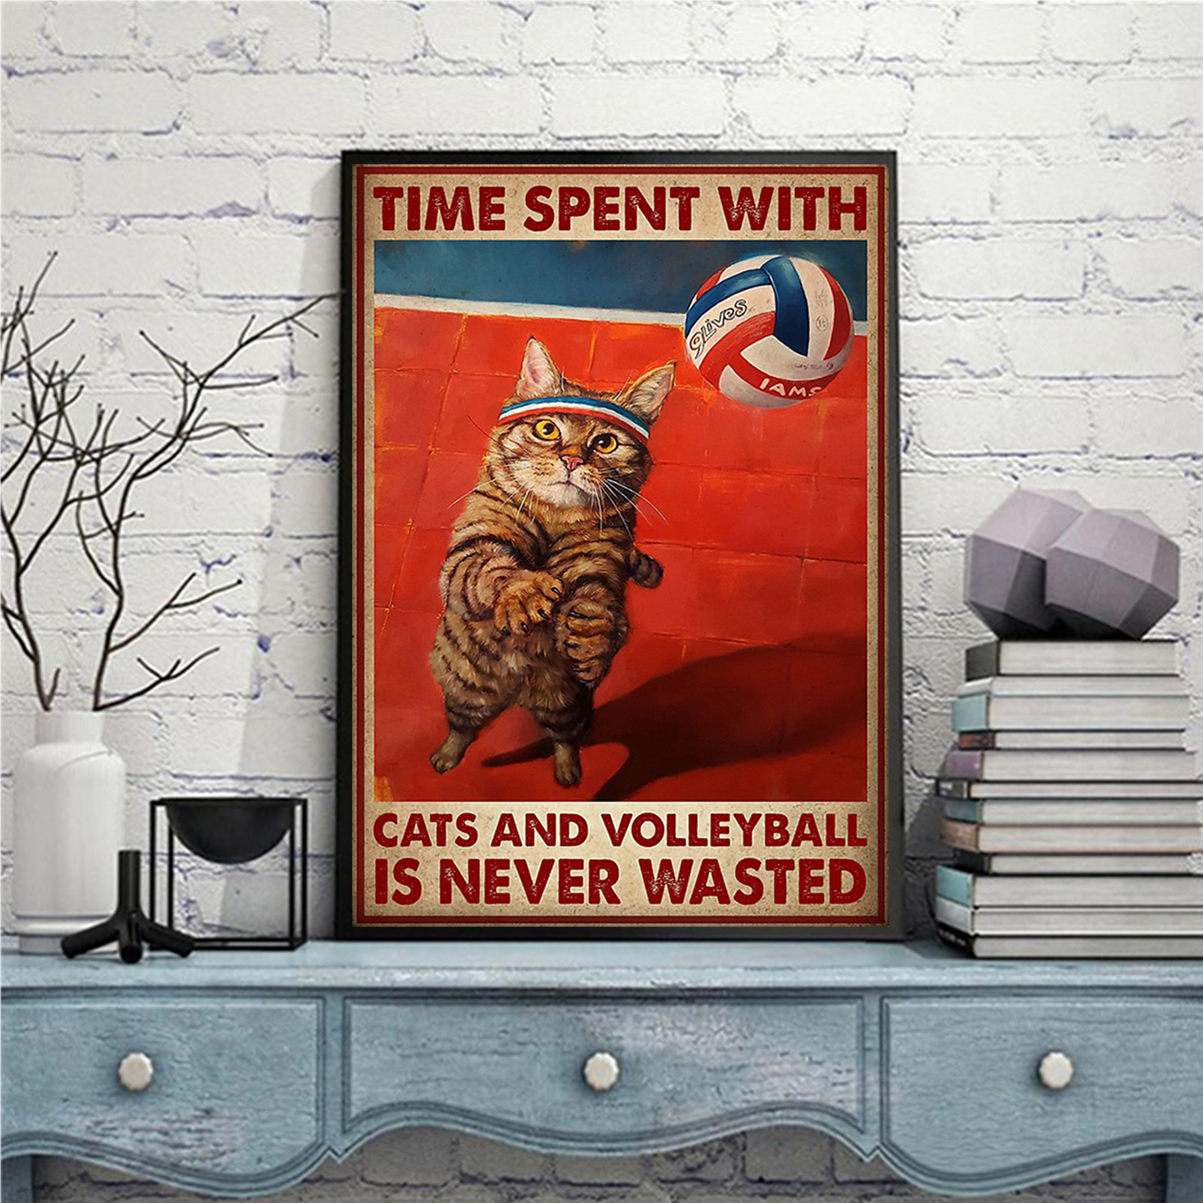 Time spent with cats and volleyball is never wasted poster A3